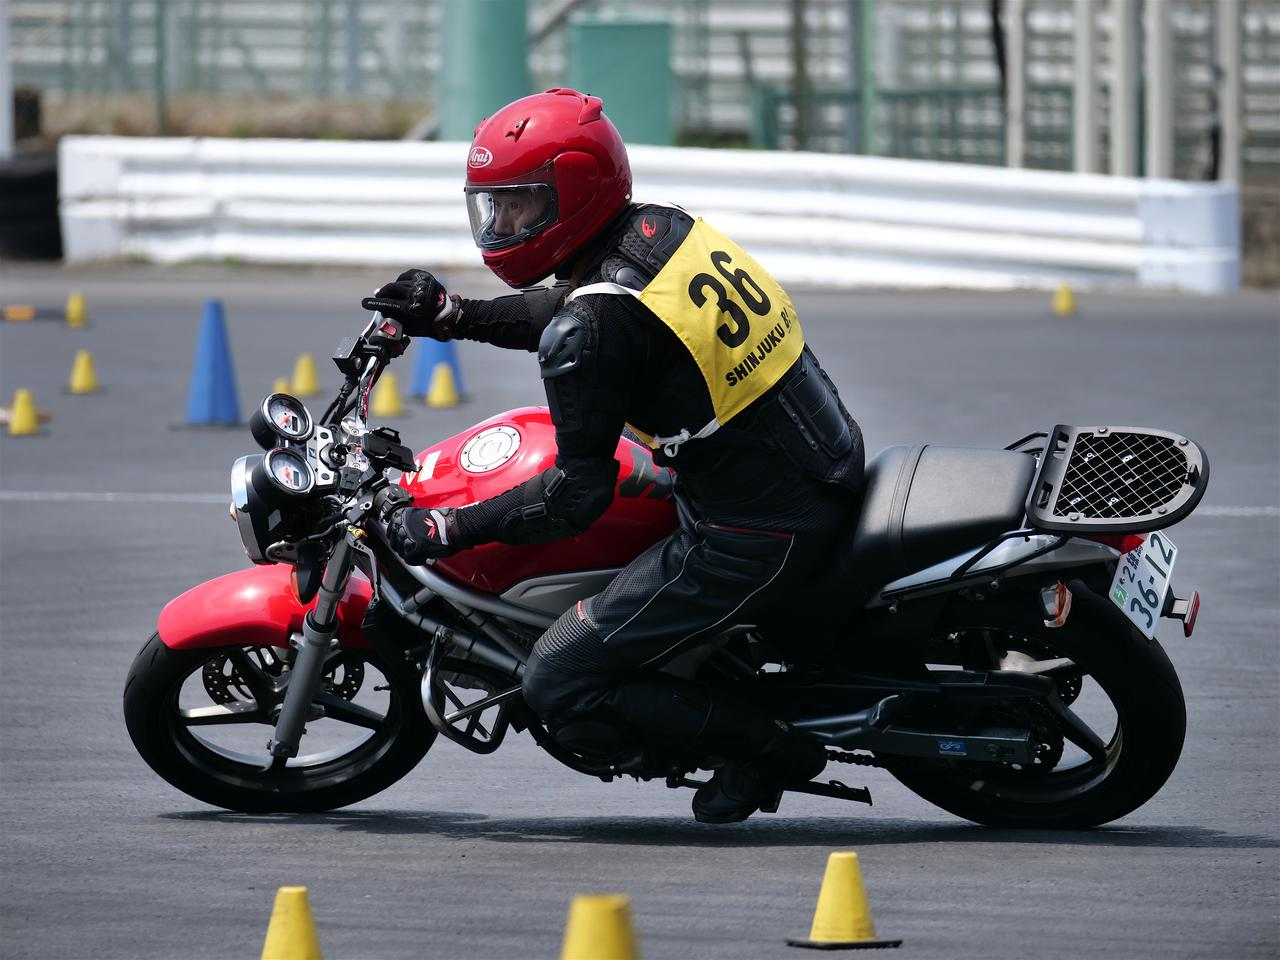 Images : 6番目の画像 - ジムカーナで活躍するホンダ「VTR」をもっと見る! - LAWRENCE - Motorcycle x Cars + α = Your Life.